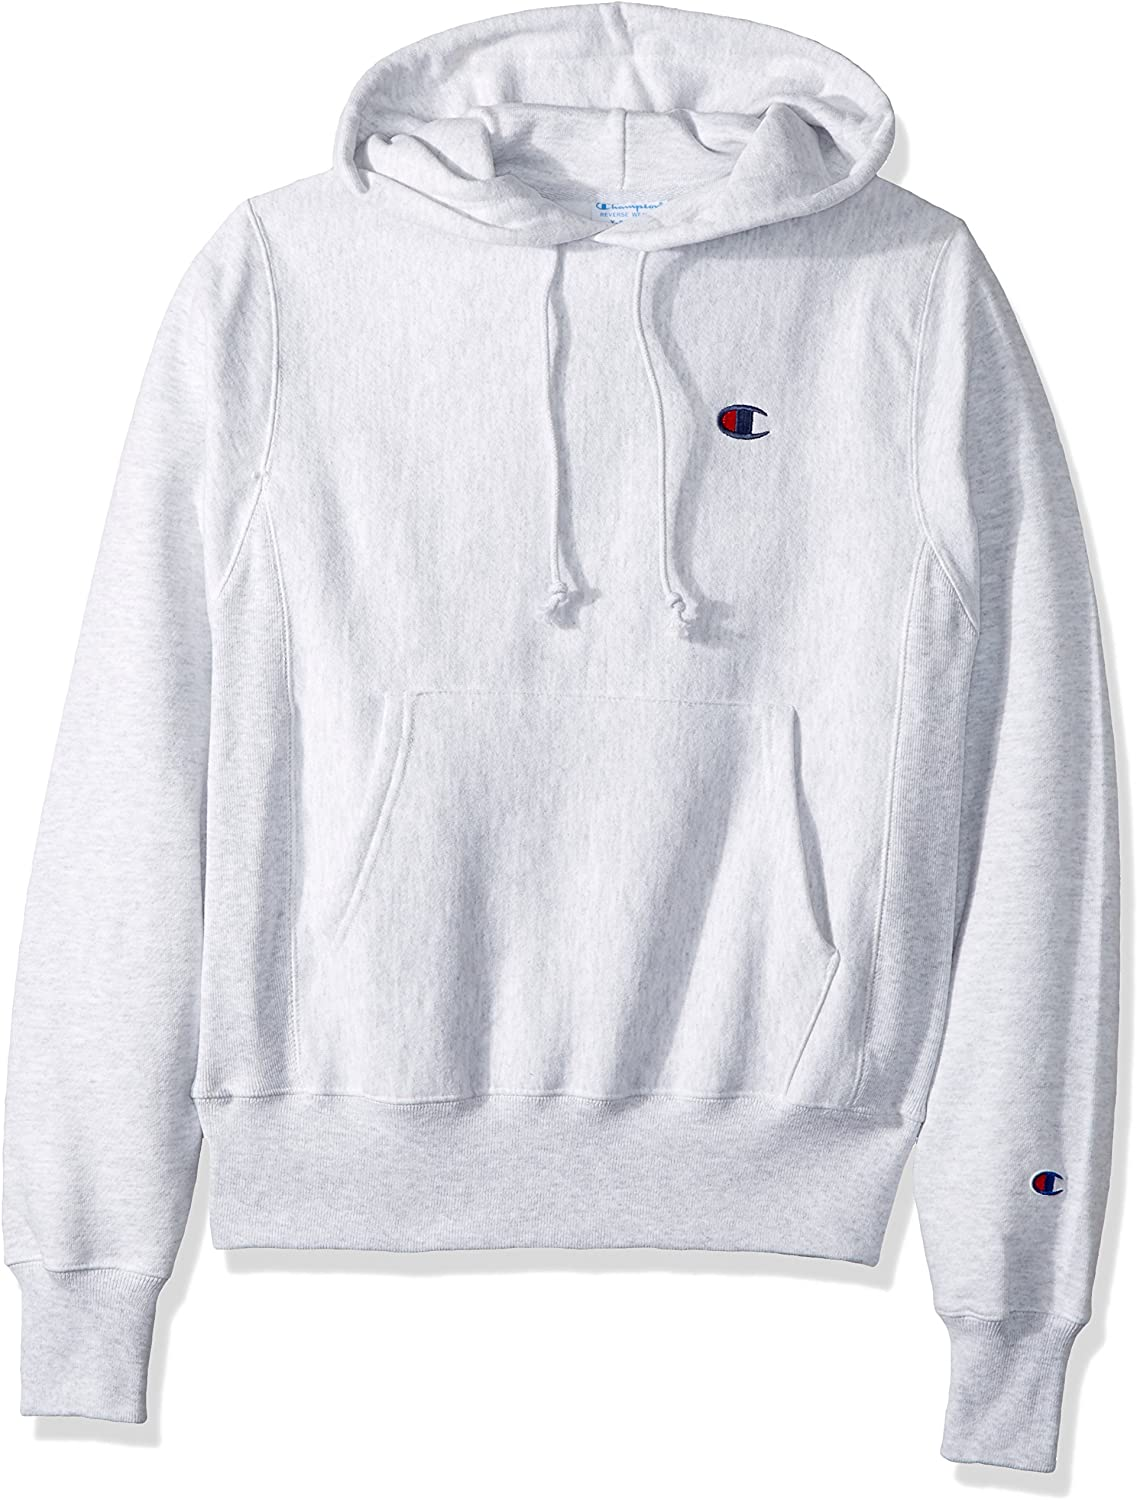 Comfortable Clothing